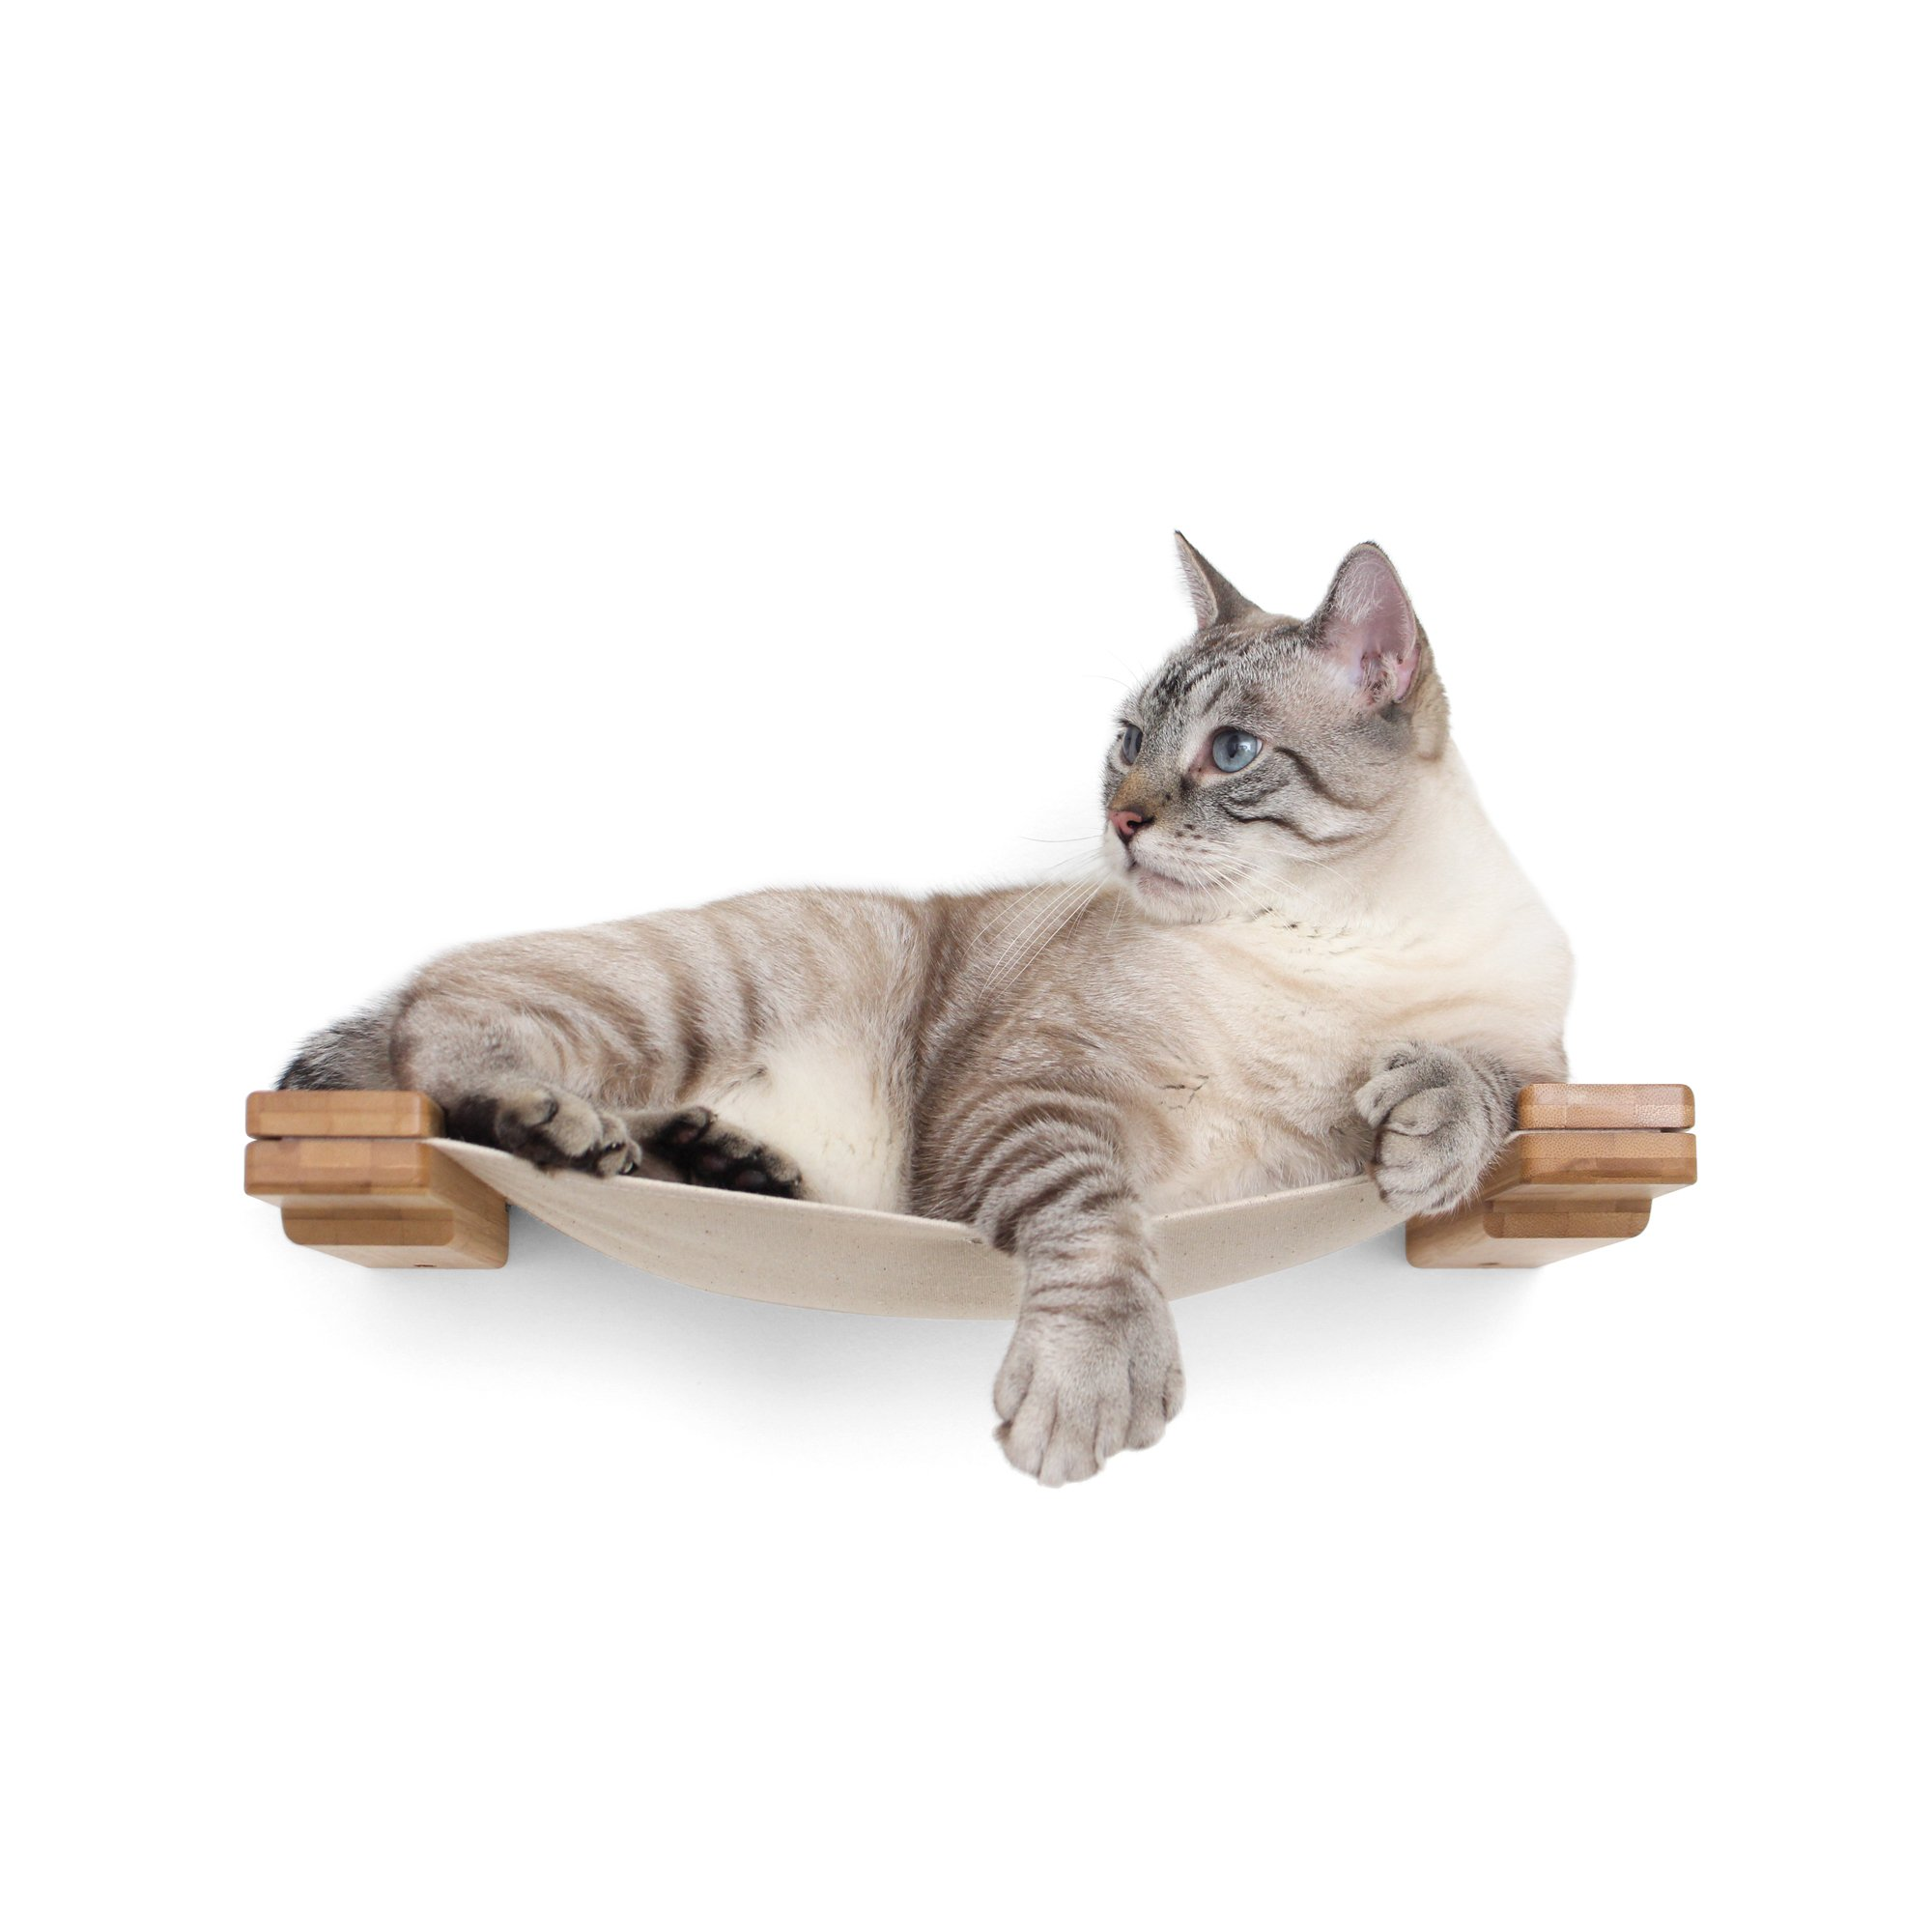 Catastrophicreations The Cat Mod Lounge Hammock For Cats In English Chestnut, 18 In W X 3 In H, 5 Lb